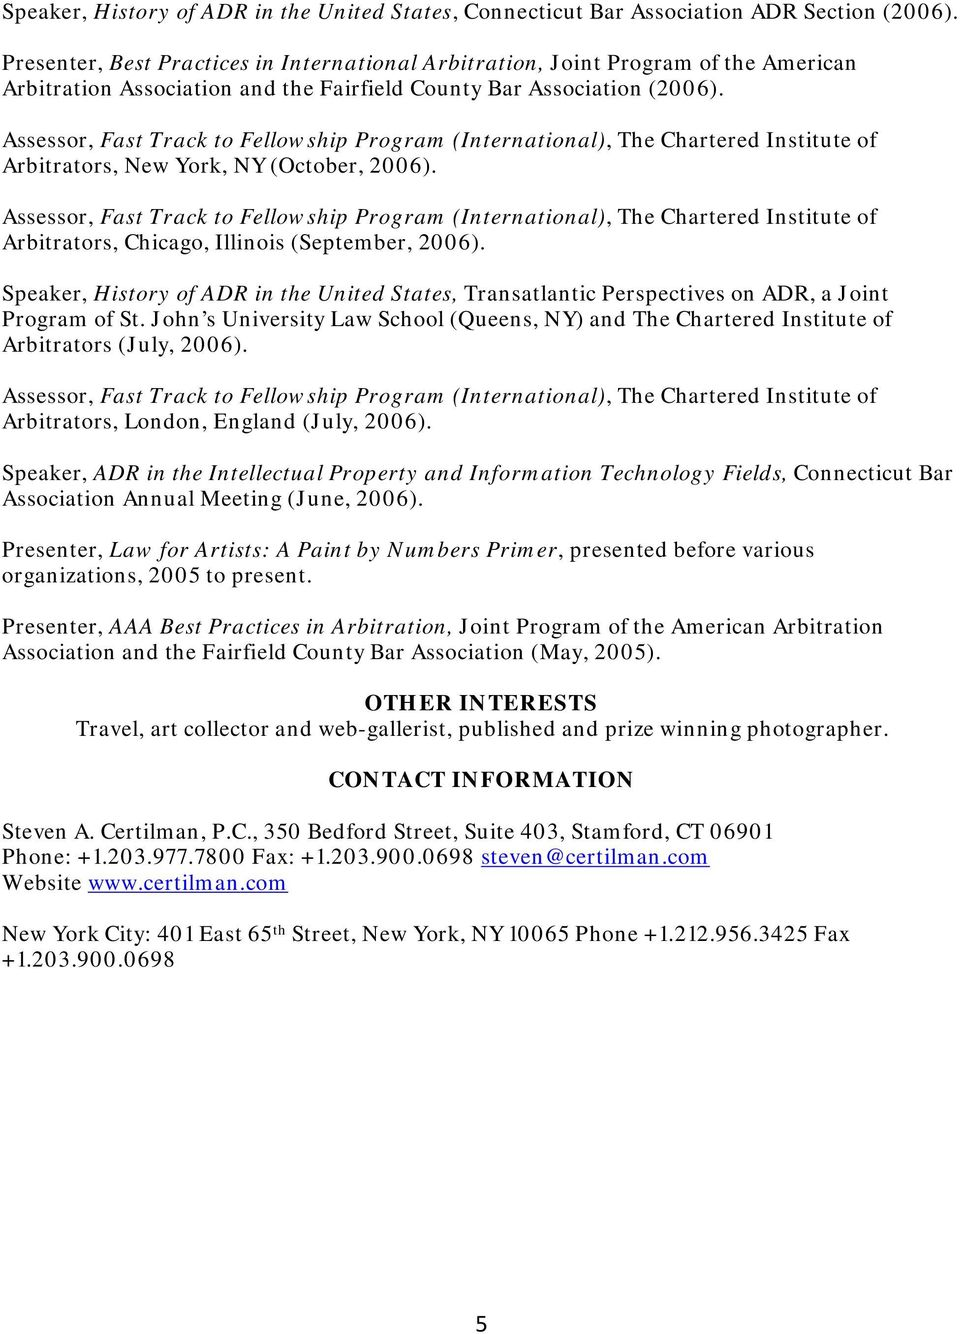 Arbitrators, New York, NY (October, 2006). Arbitrators, Chicago, Illinois (September, 2006). Speaker, History of ADR in the United States, Transatlantic Perspectives on ADR, a Joint Program of St.